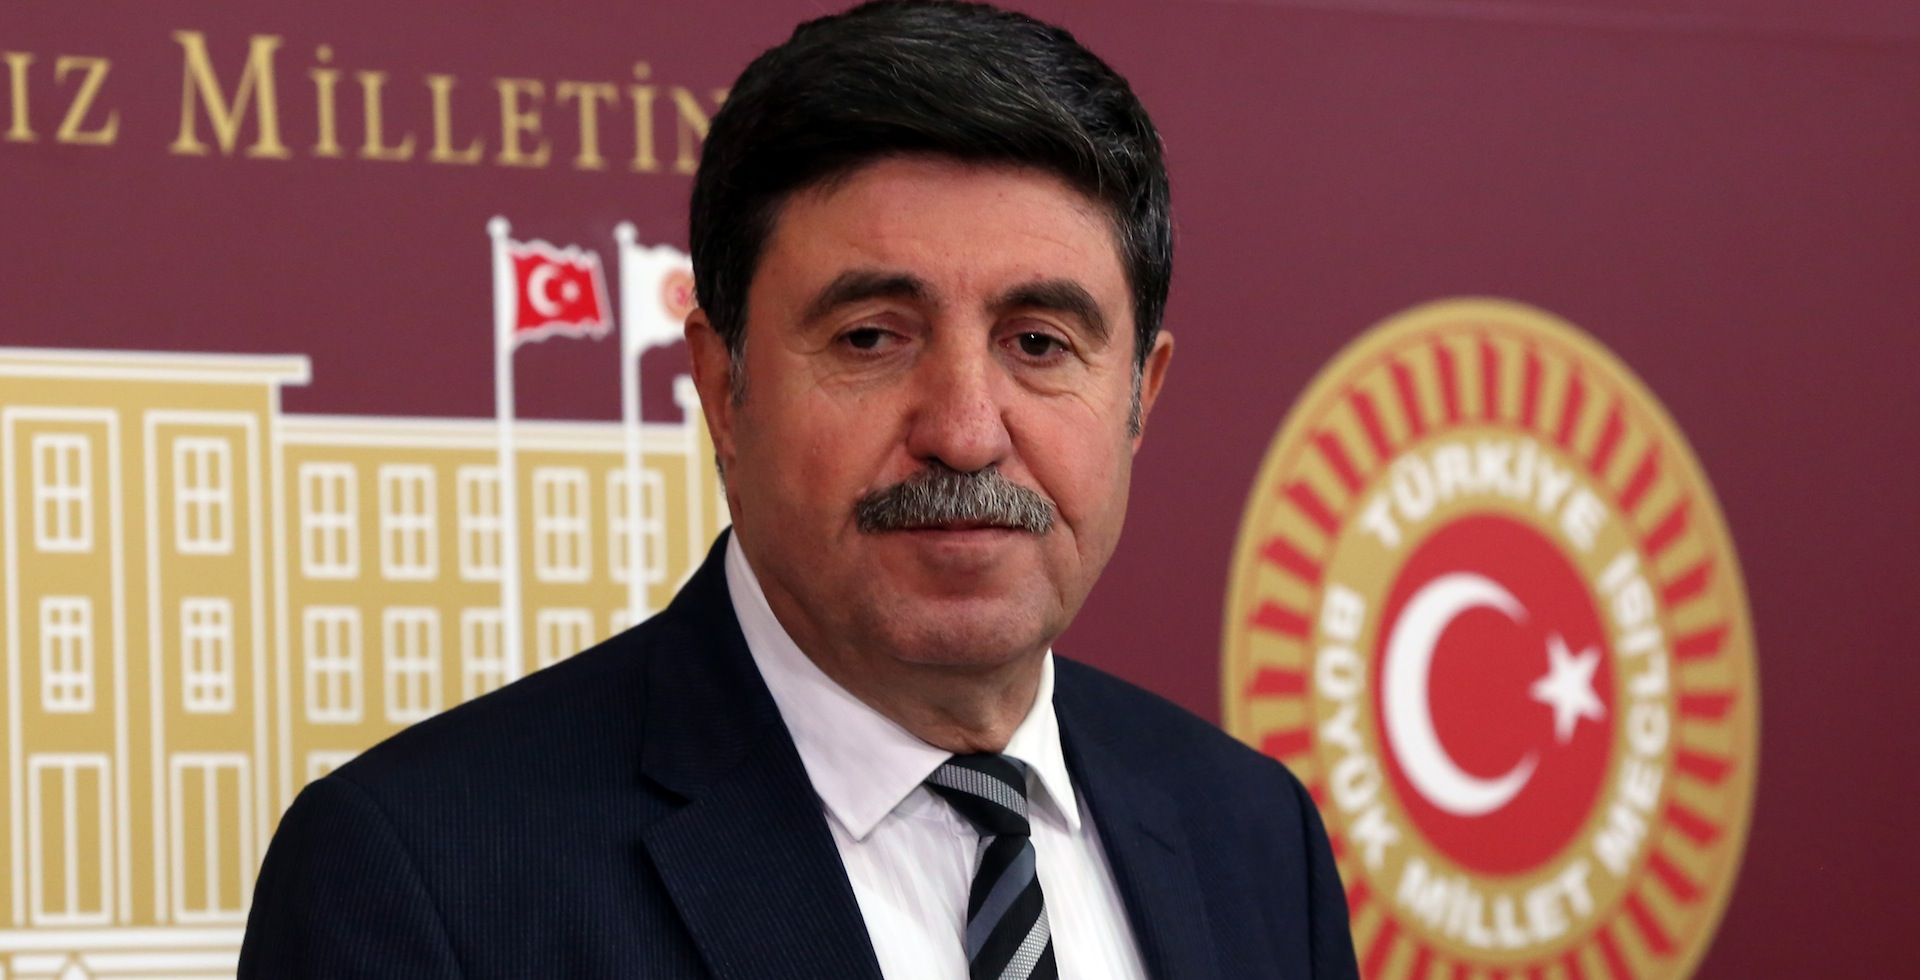 IBNA/Interview with Altan Tan, HDP MP in Diyarbakir